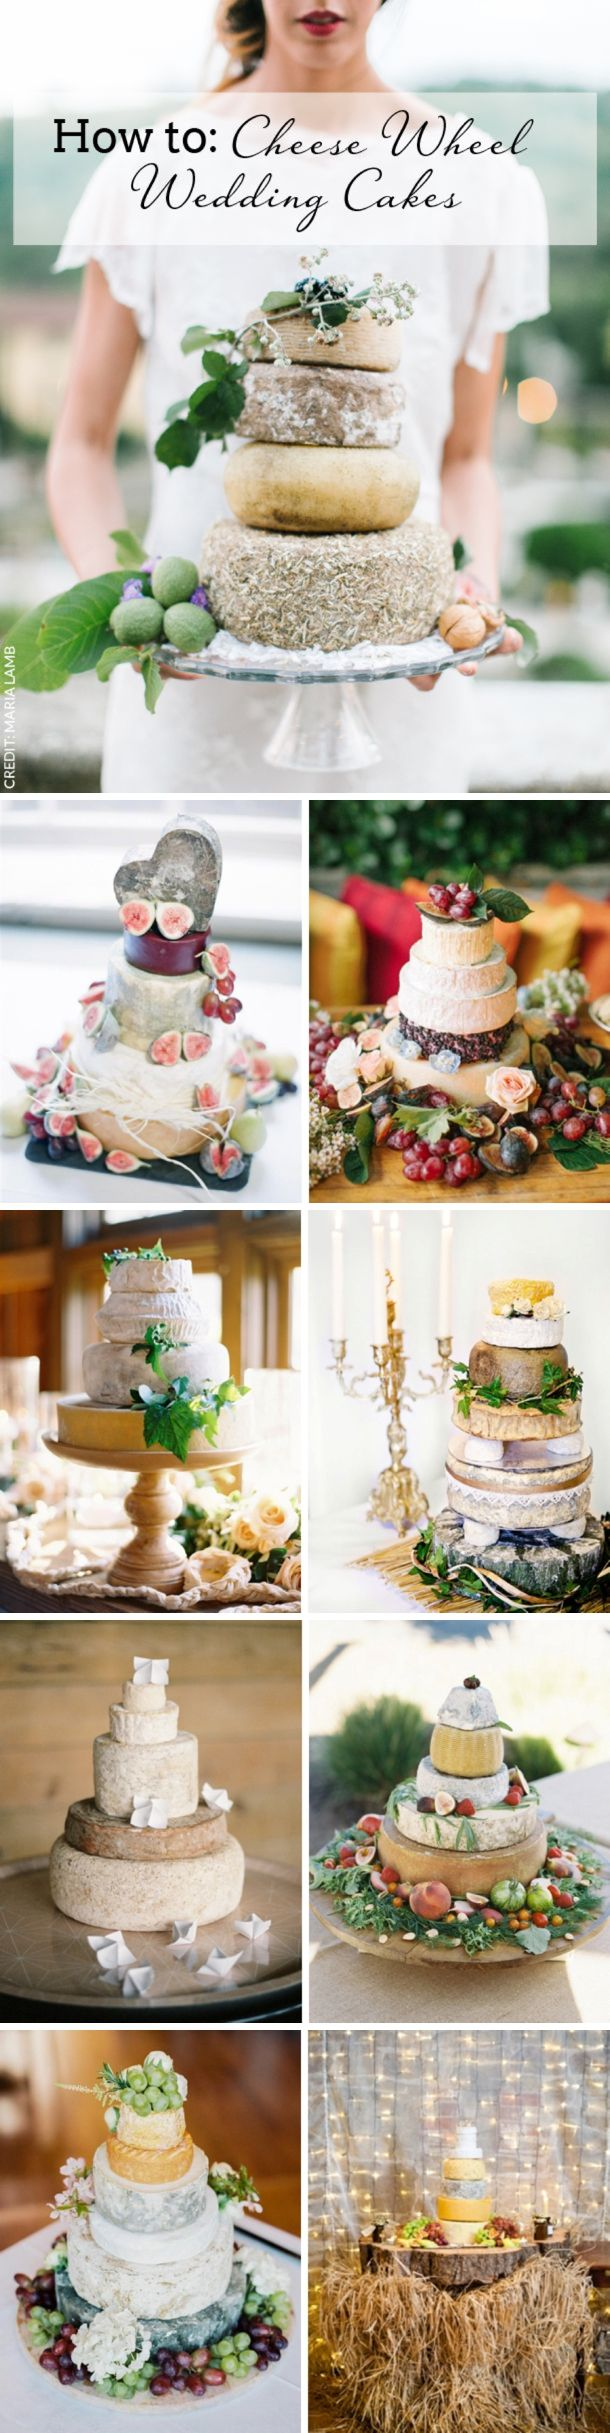 How to DIY a Cheese Wheel Wedding Cake | SouthBound Bride | Full credits & links: http://www.southboundbride.com/how-to-cheese-wheel-wedding-cakes